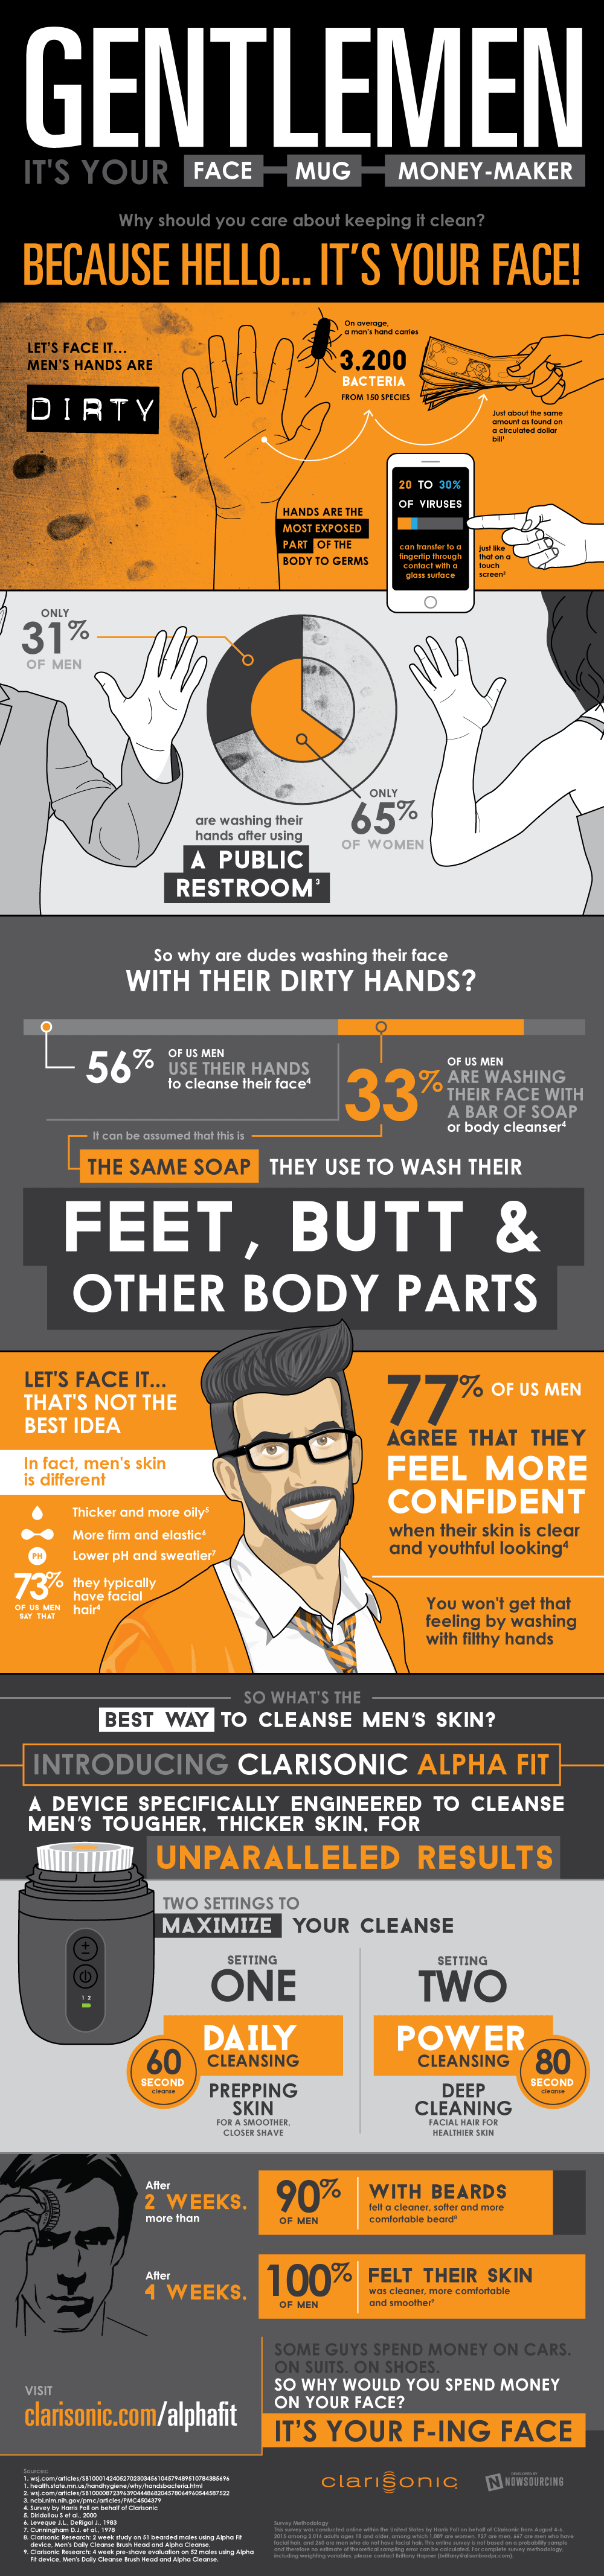 Clarisonic-Alpha-Fit-Infographic_-FINAL_1